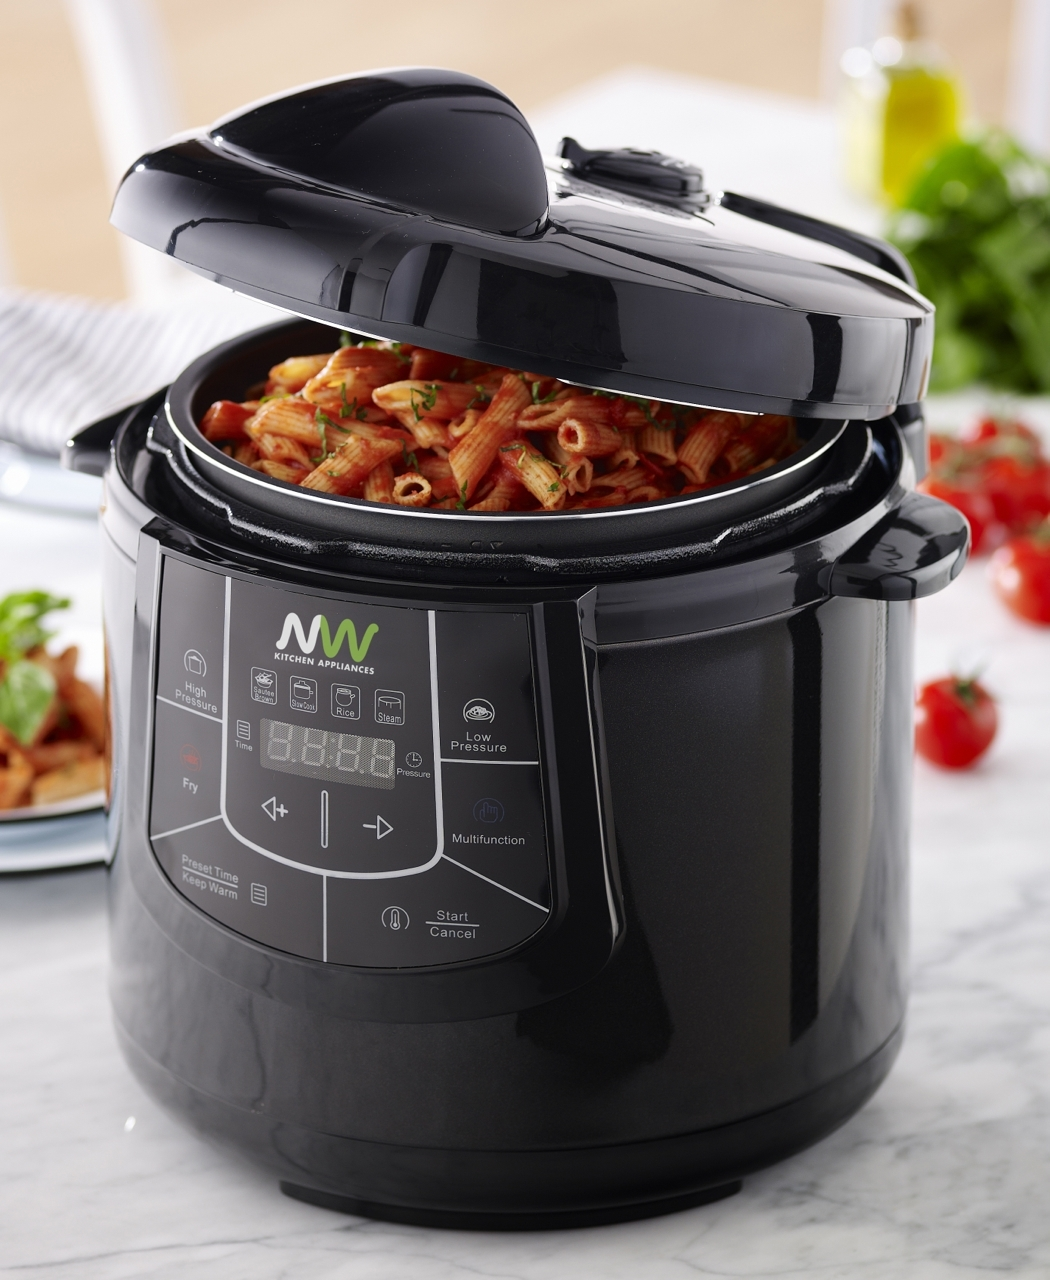 Giveaway: NewWave 6-in-1 Electric Multi-Cooker   My Baking Addiction